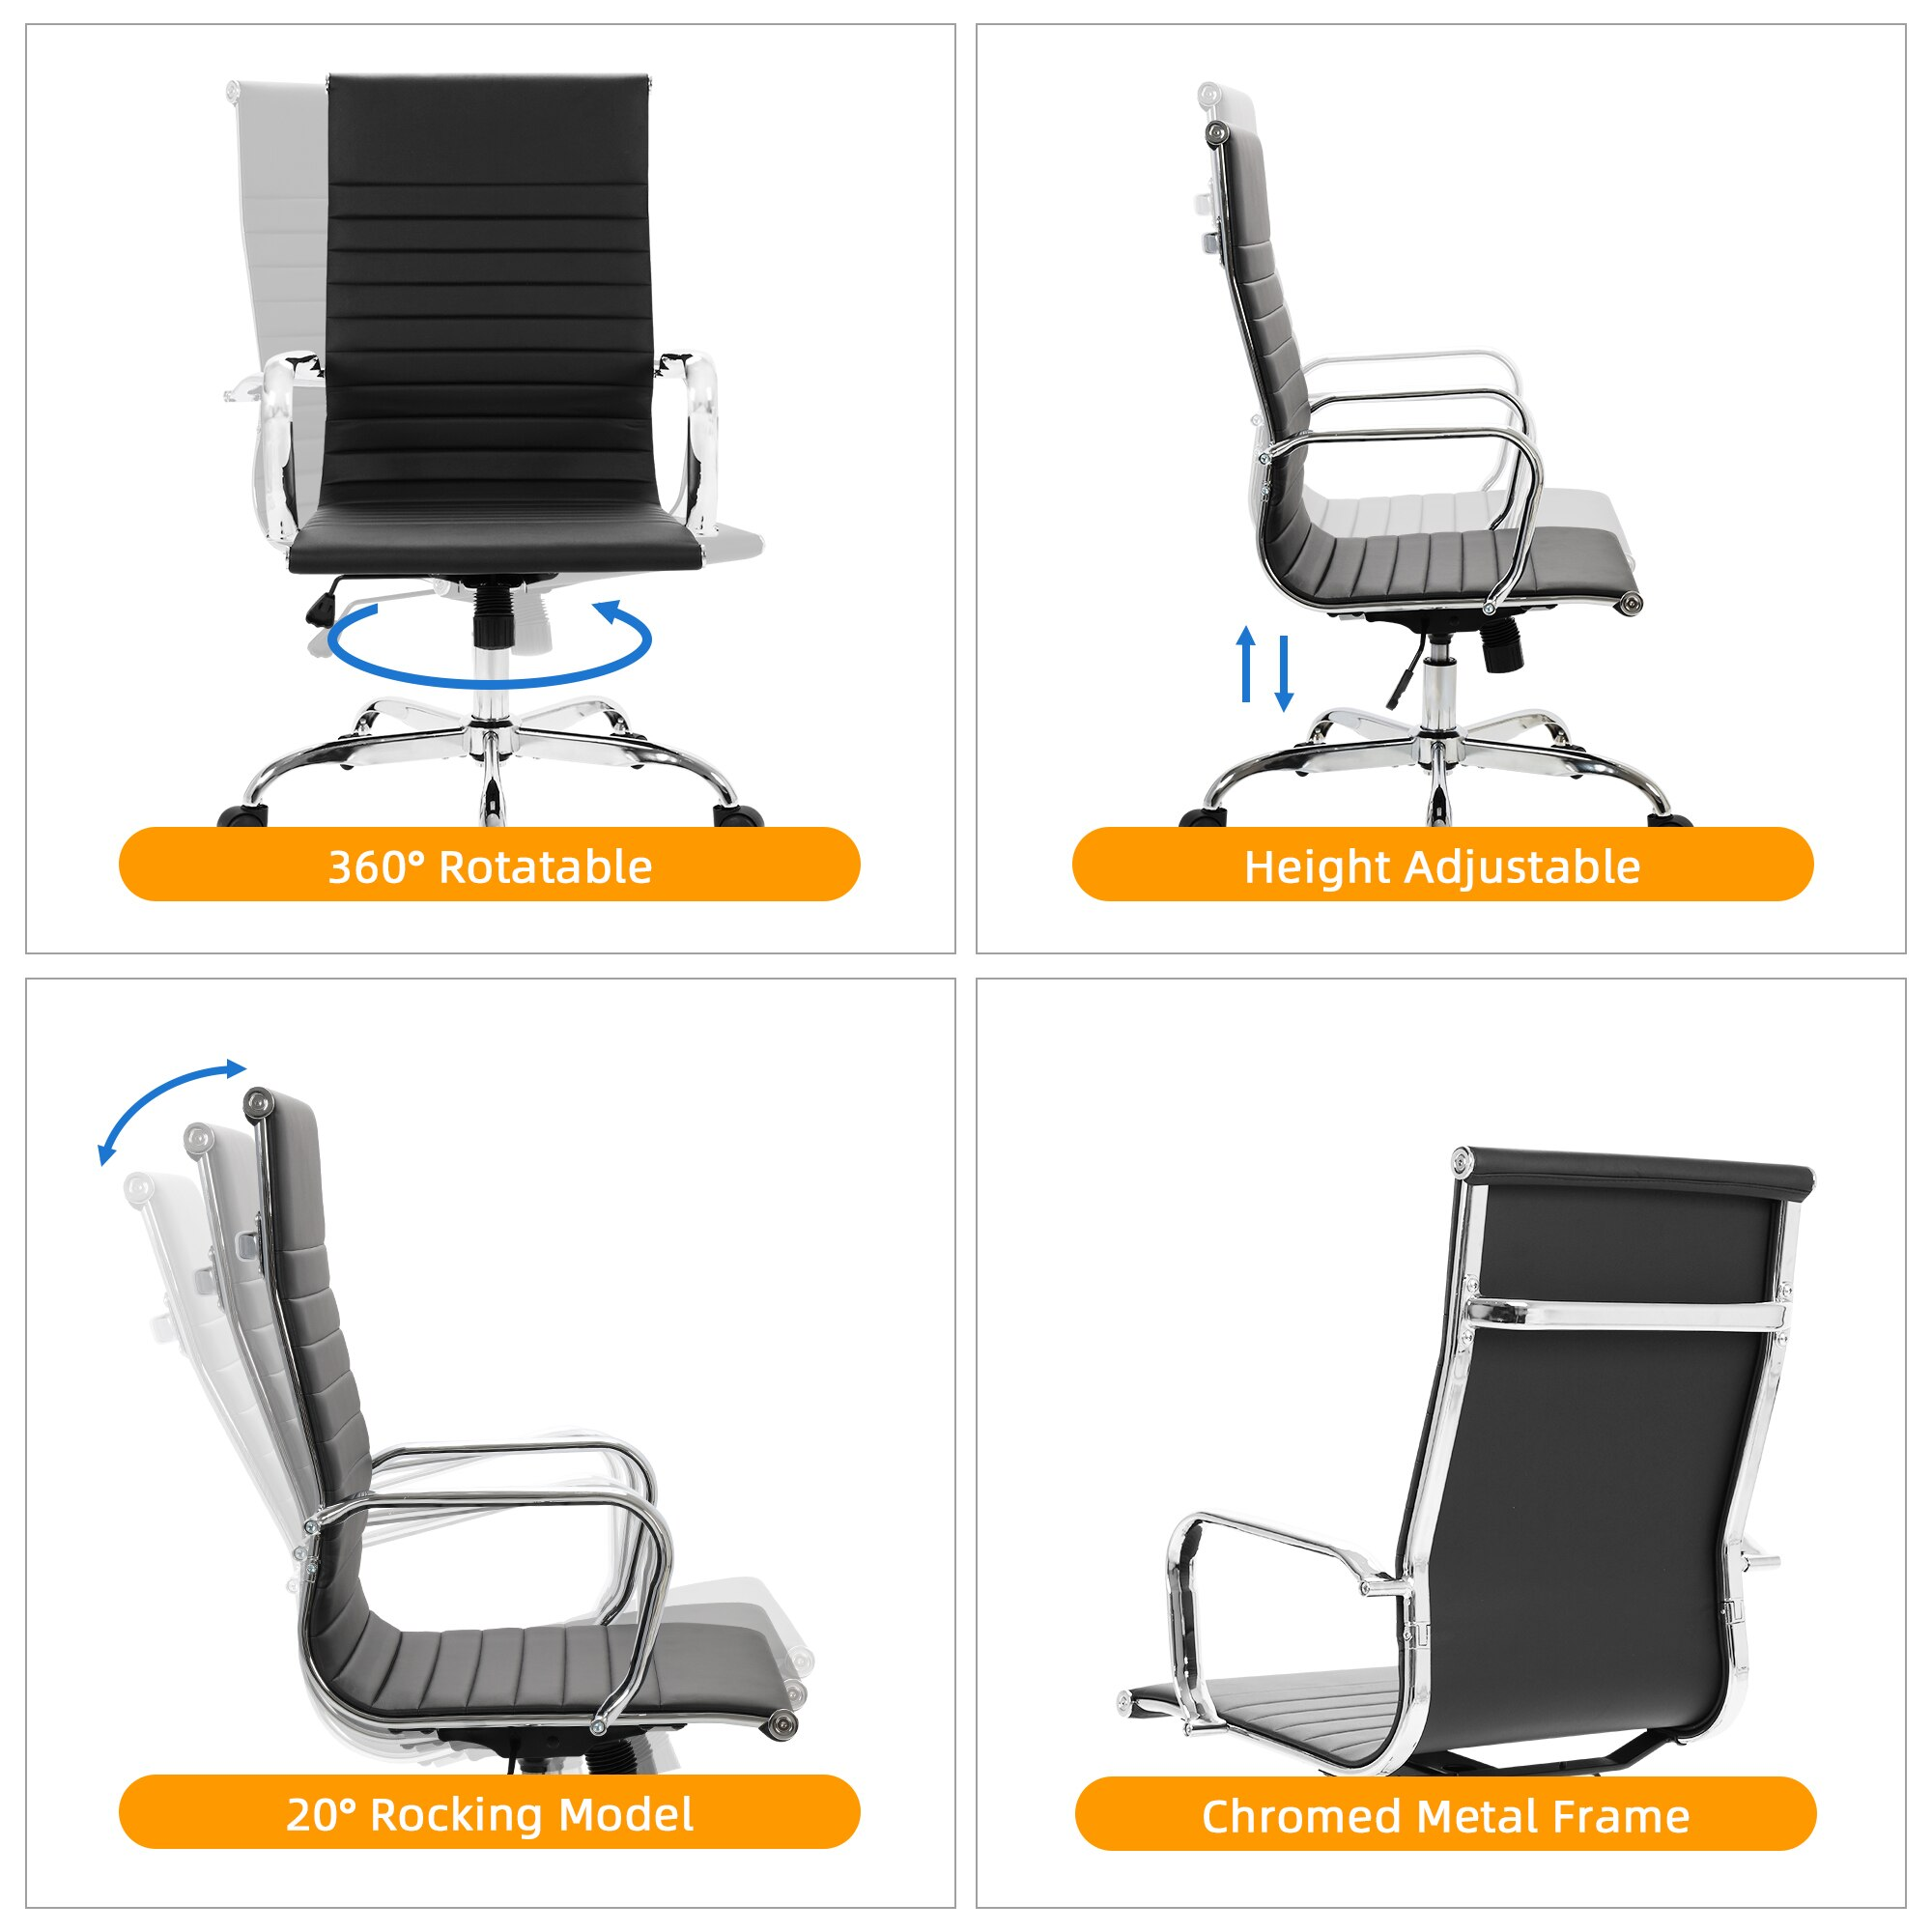 H0184f7dd275643258171ced00b339296d - GOSKEY High Back Office Chair PU Leather Ribbed Swivel Tilt Adjustable Home Desk Chair with Armrest Executive Conference Black